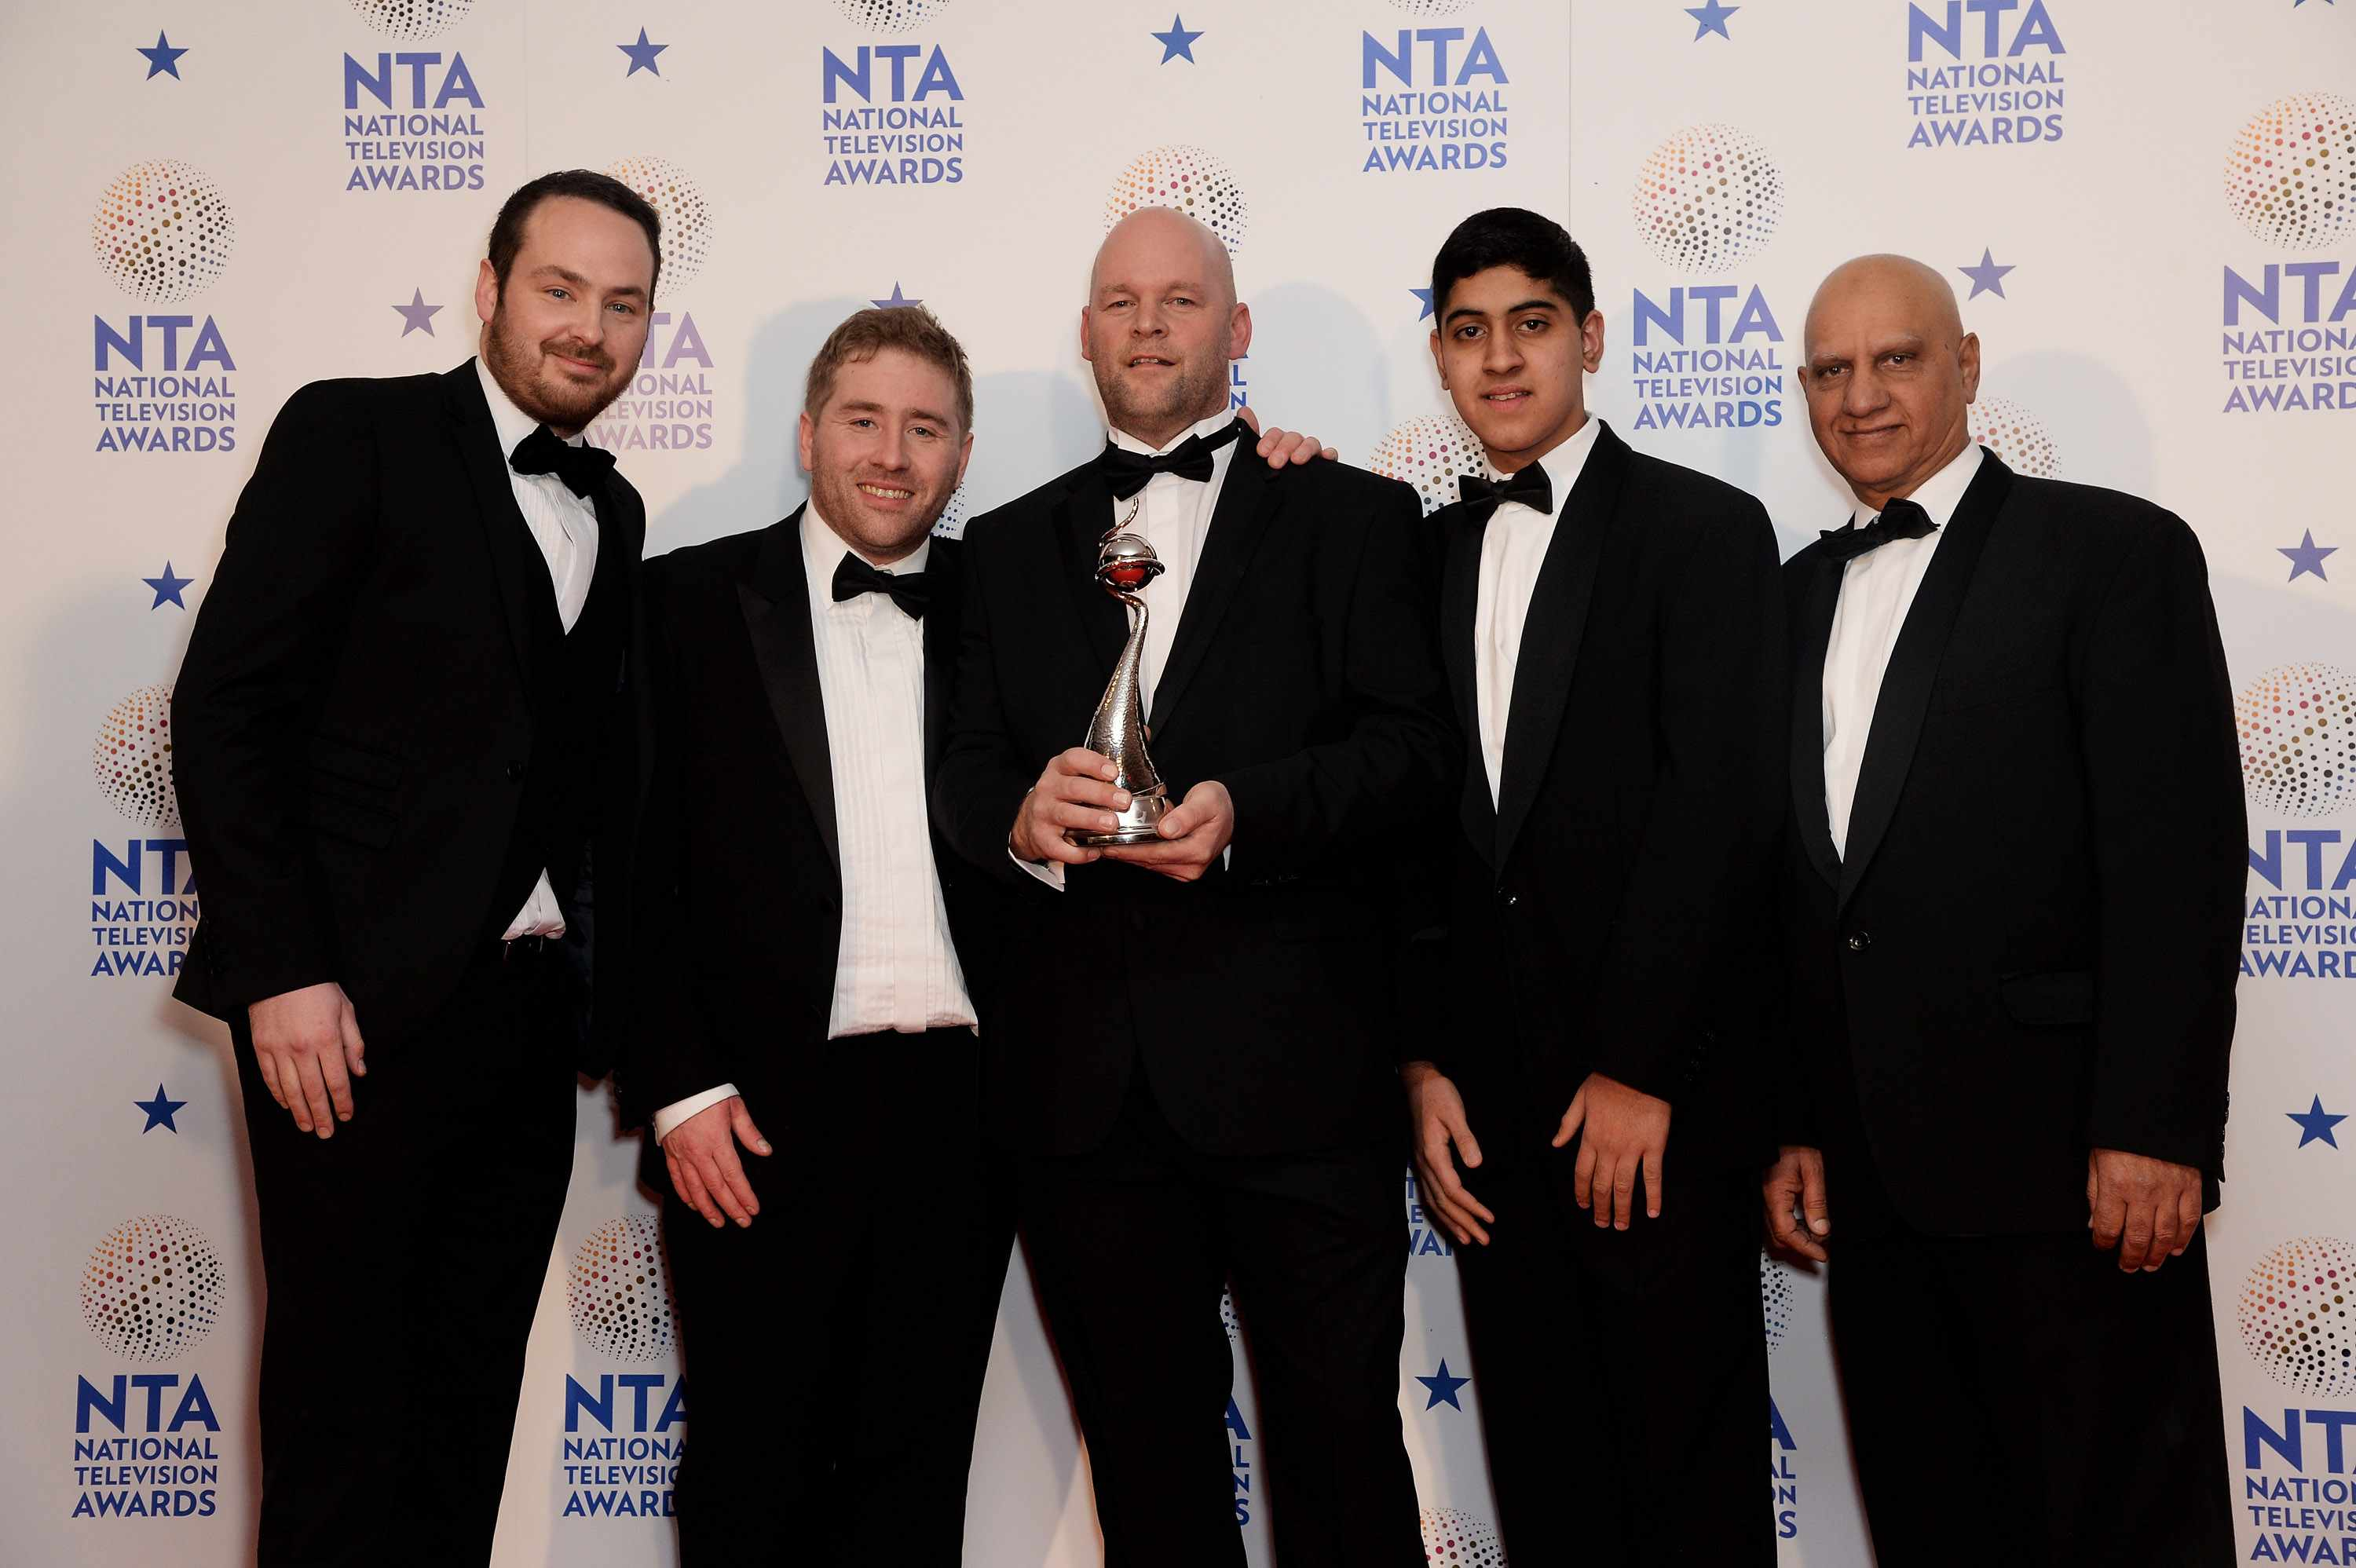 LONDON, ENGLAND - JANUARY 22: Jonny Mitchell, Matthew Burton, Michael Steer and Musharaf Asghar pose with their Best Documentary Series award for 'Educating Yorkshire' in front of the winners boards at the National Television Awards 2014 on January 22, 2014 in London, England. (Photo by Dave J Hogan/Getty Images)